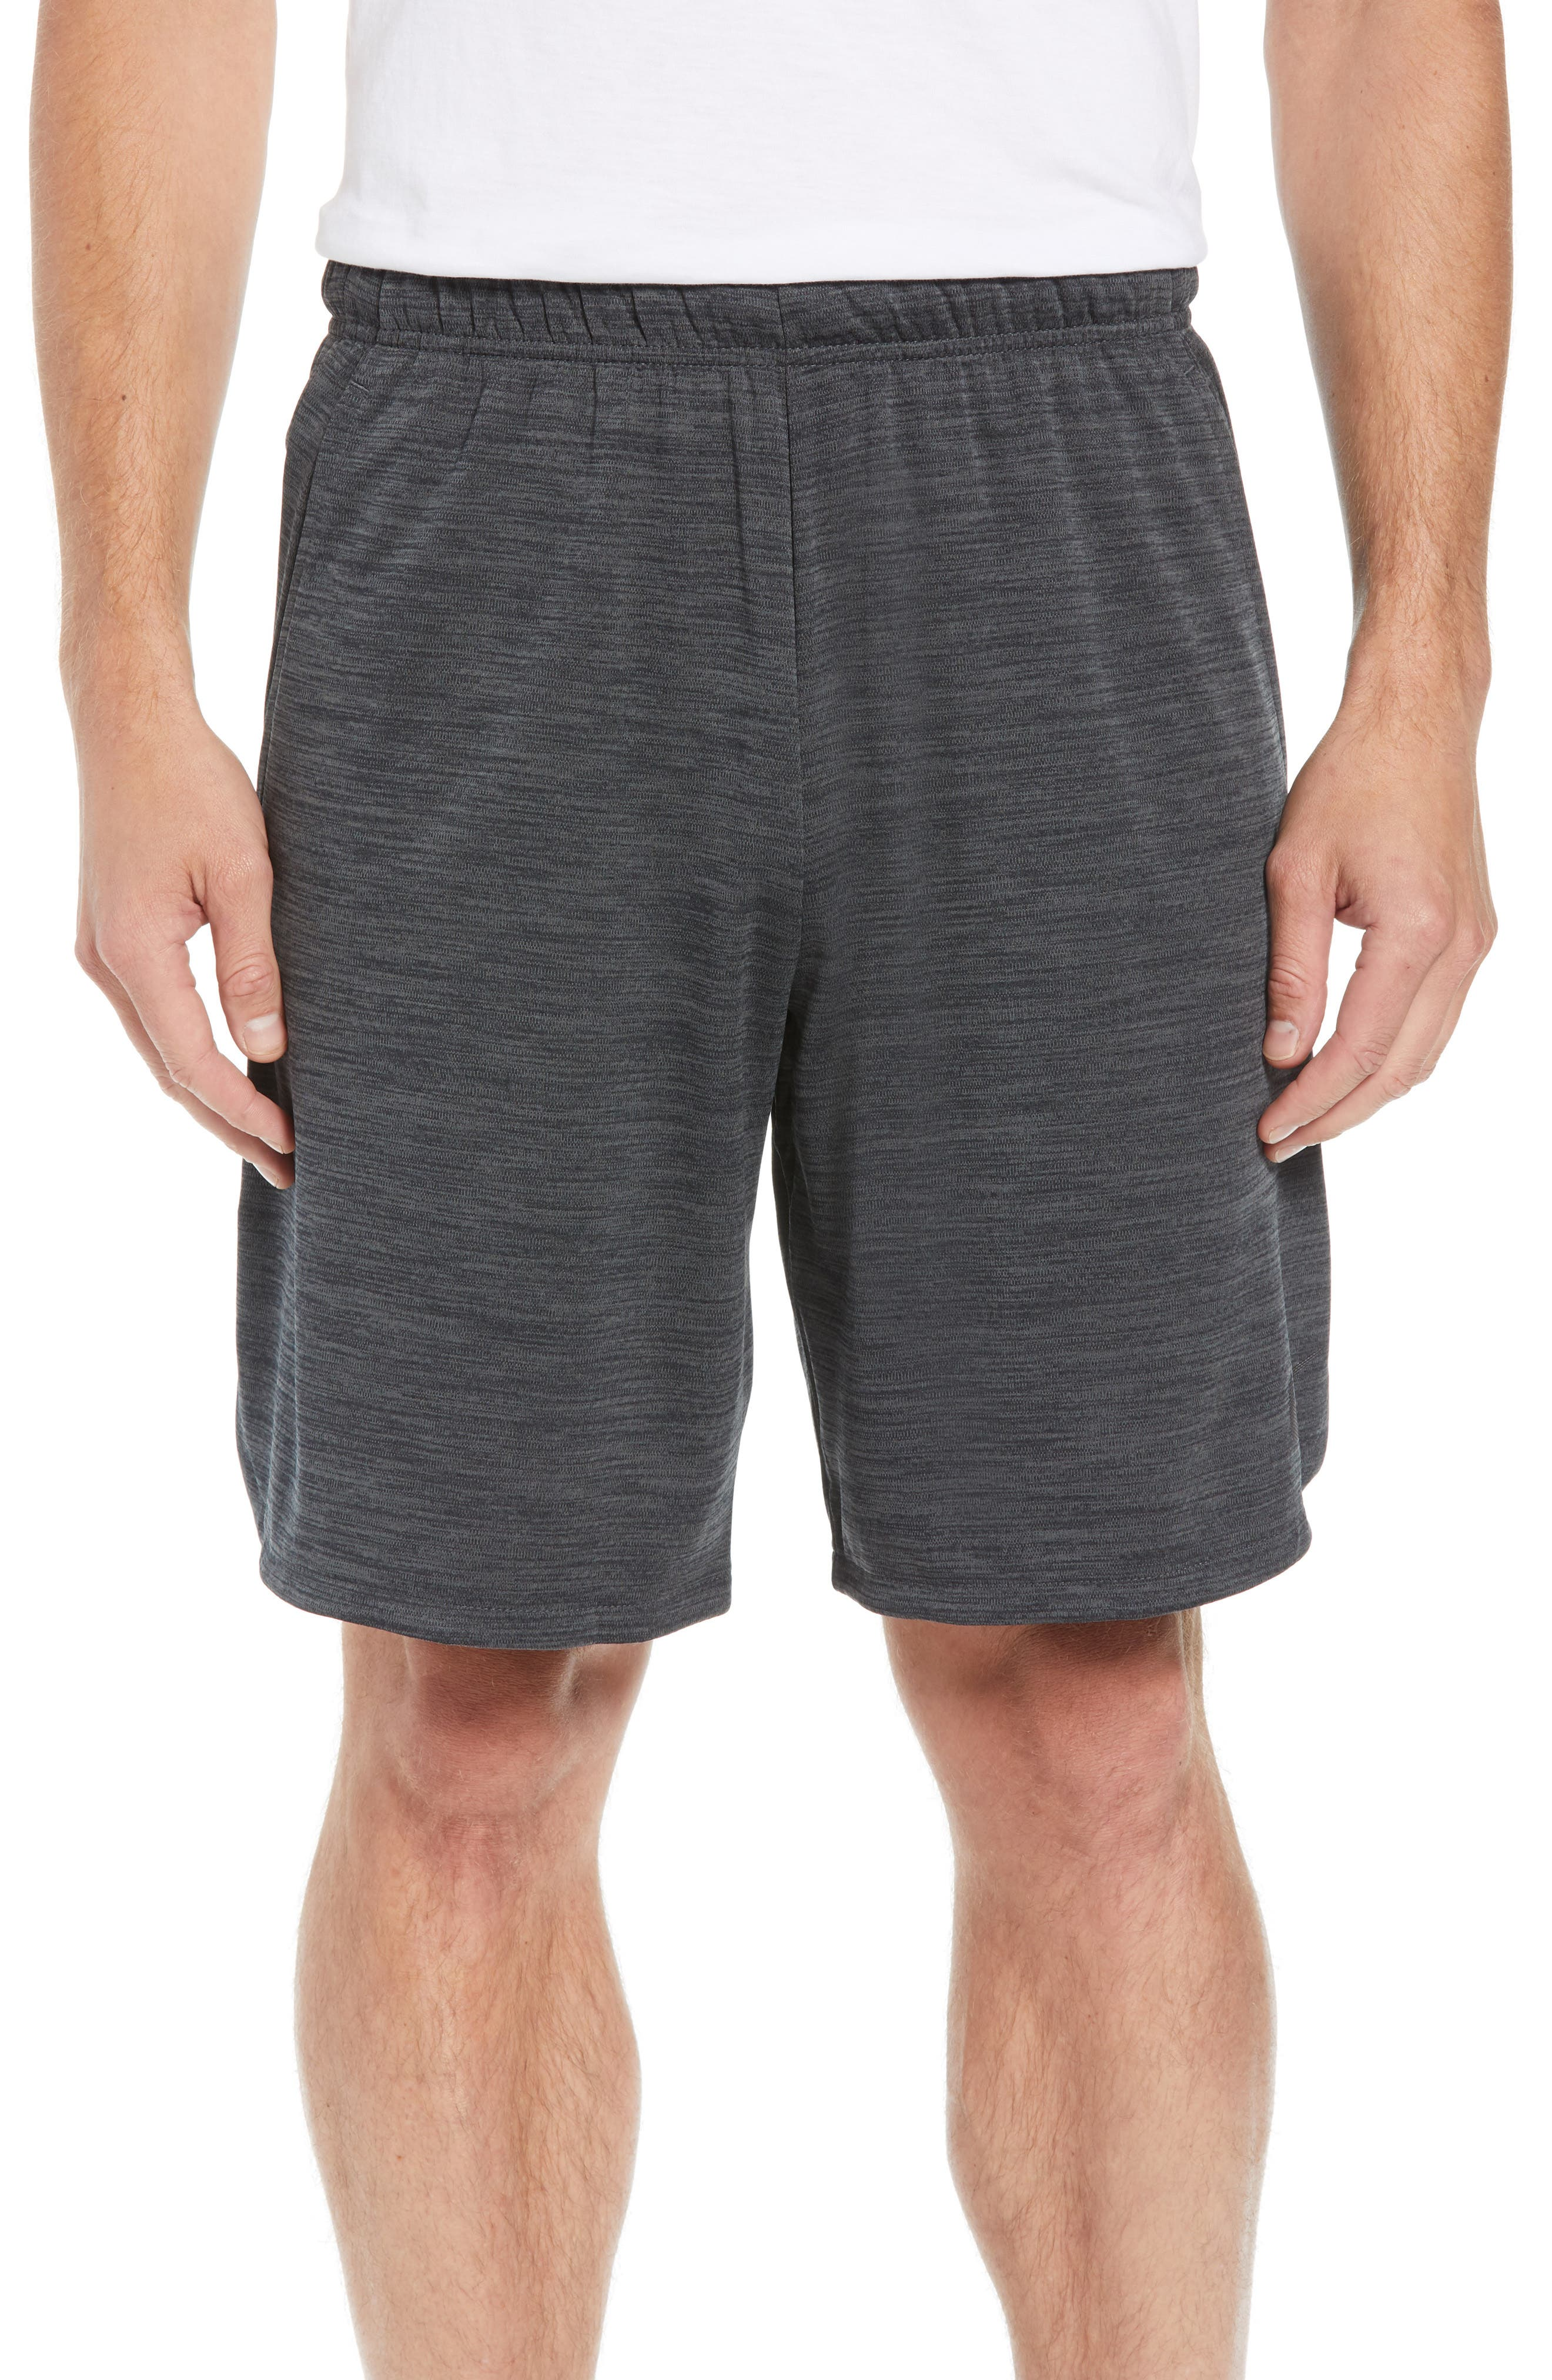 Dry Training Shorts,                         Main,                         color, BLACK